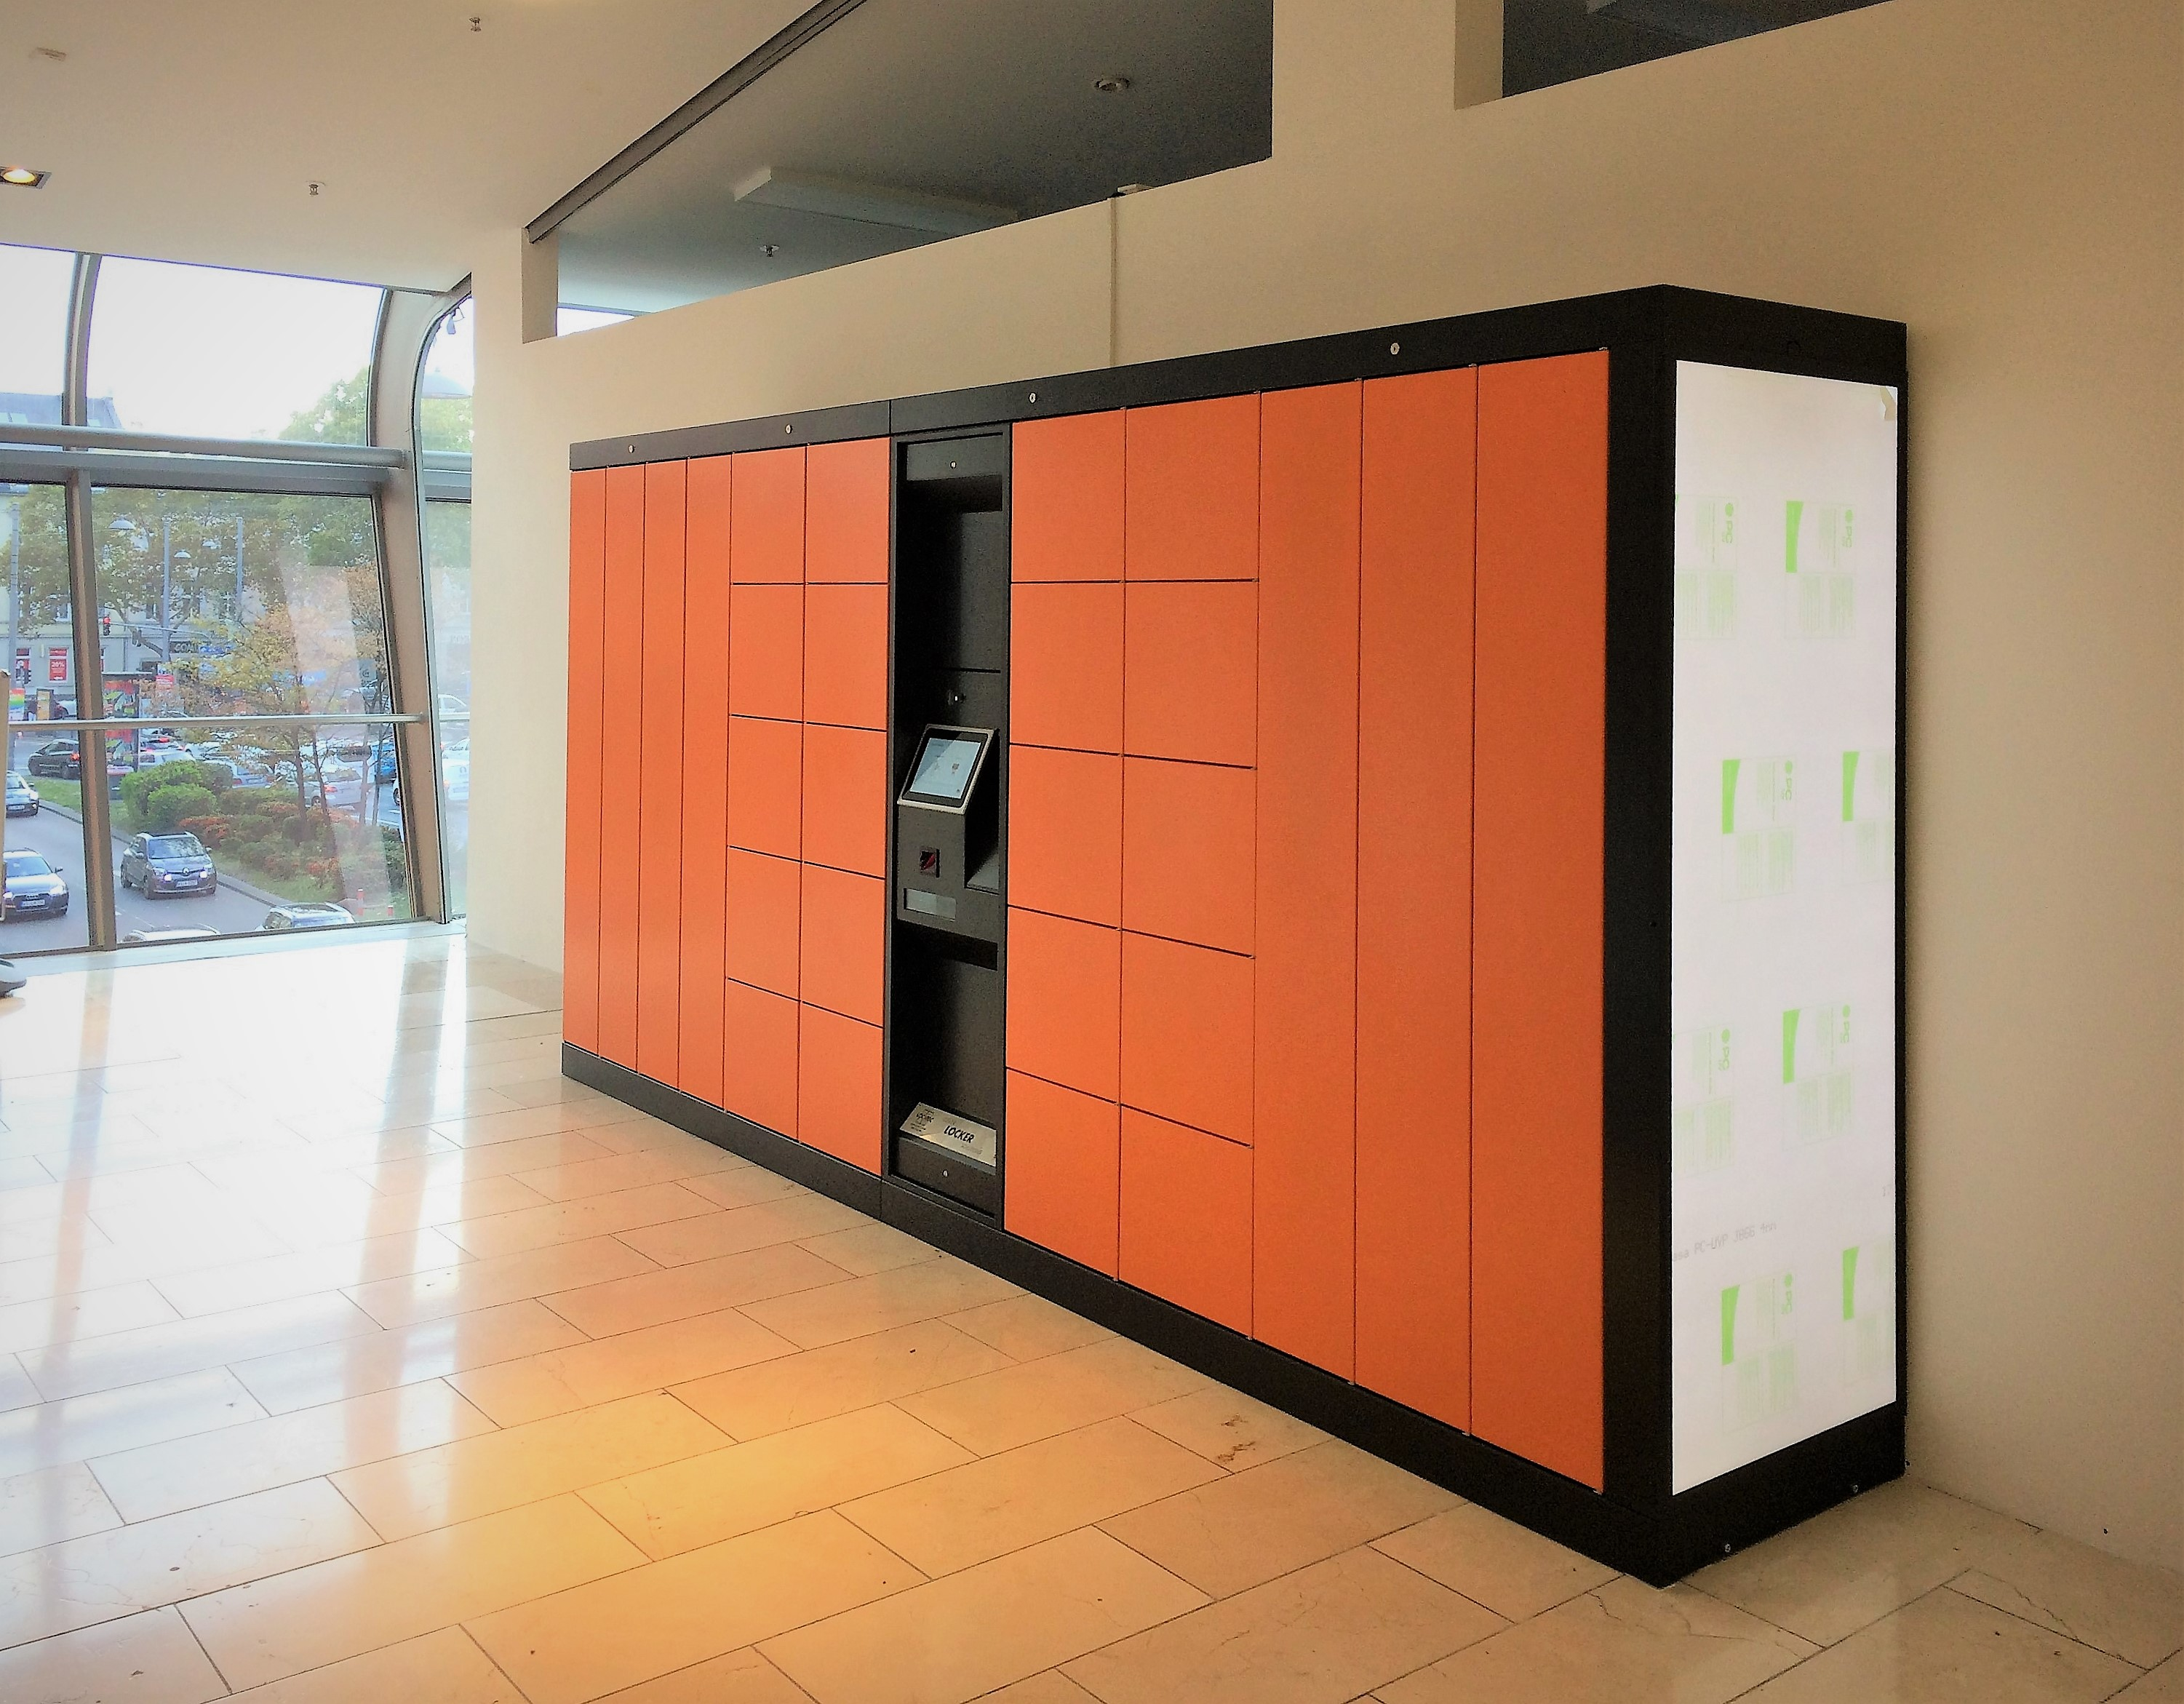 Special solution Servicebox. Special system for shopping mall: Smart lockers for shopping bags with deposit system. A combination of luggage lockers Locksafe5 and pickup station Servicebox. LockTec offers a locker solution for every application.